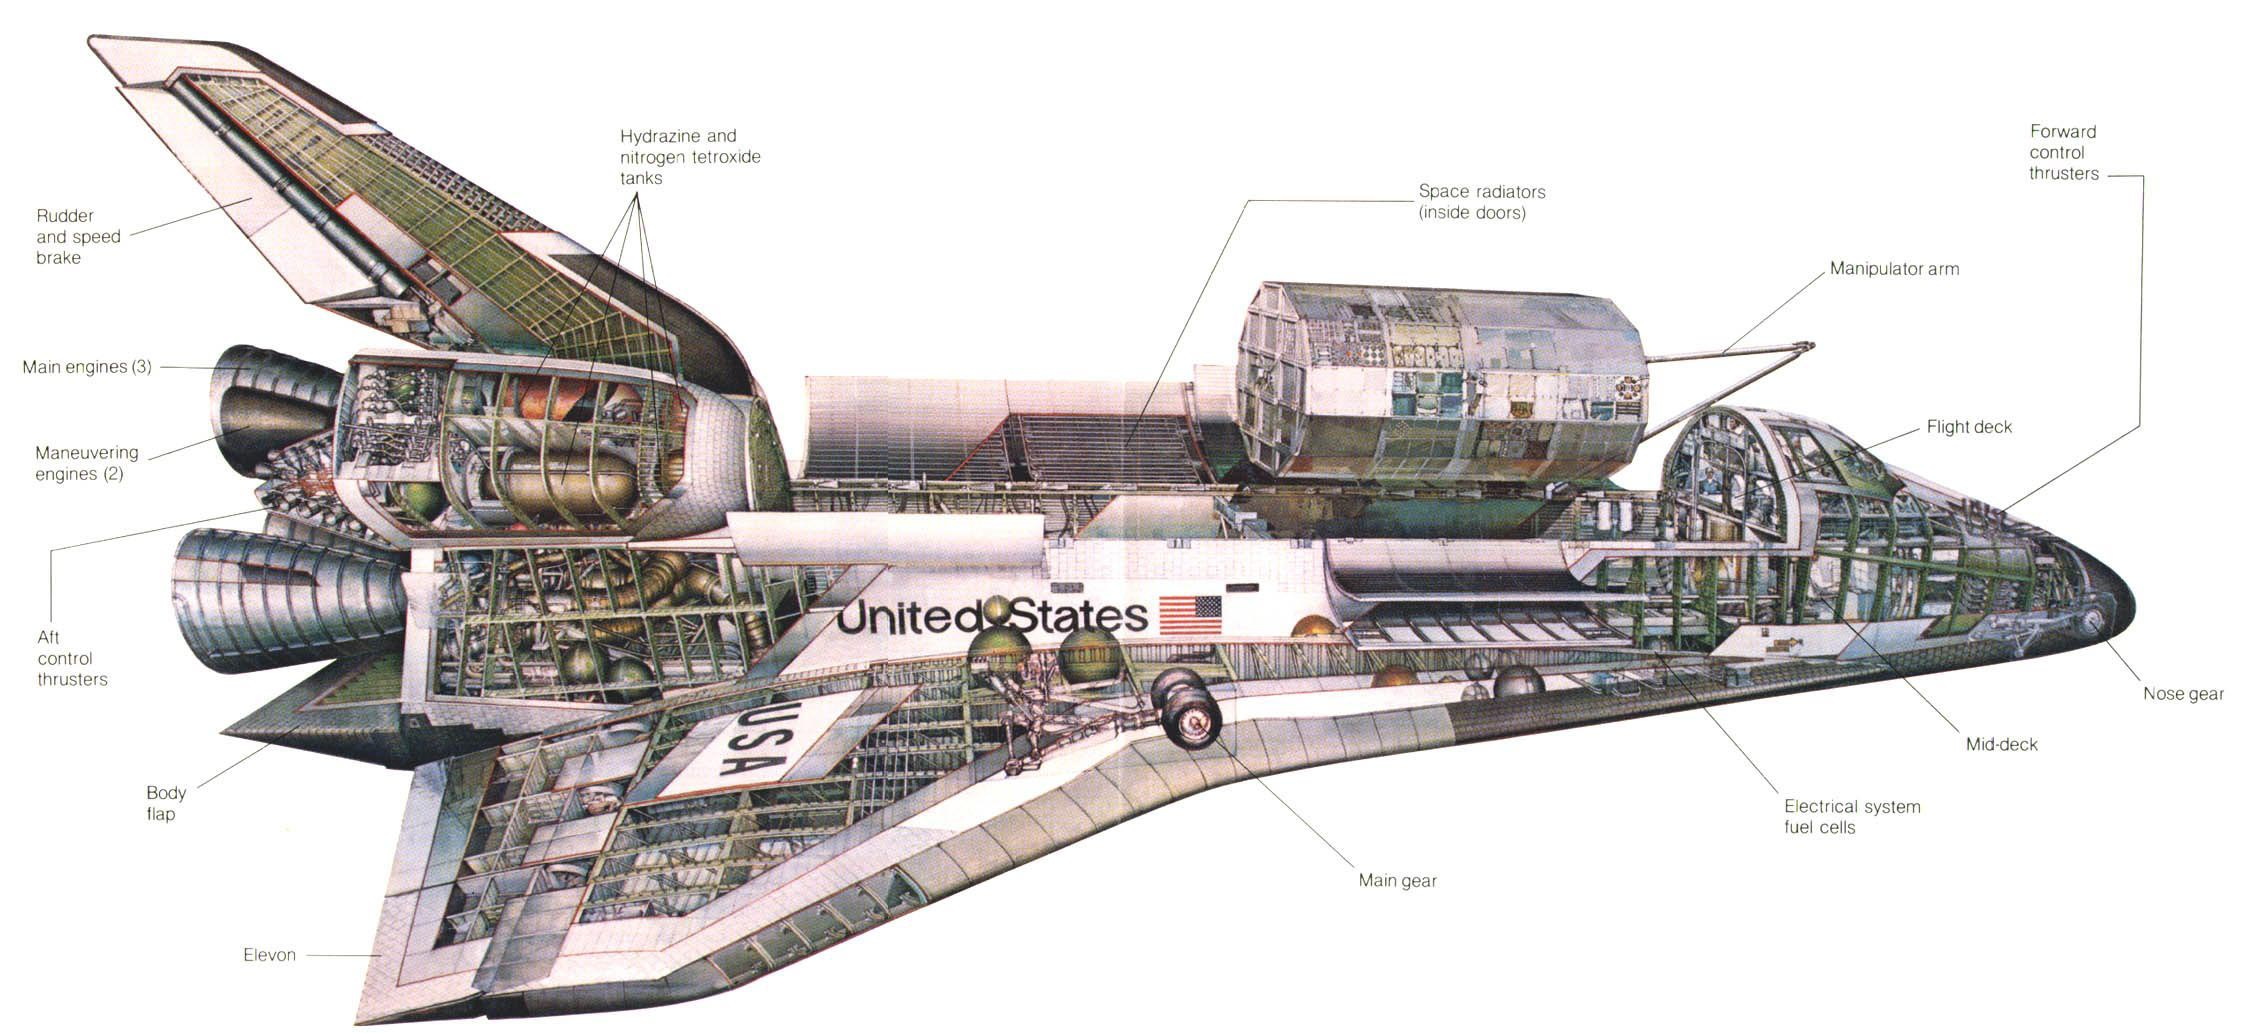 Space Shuttle Discovery cutaway